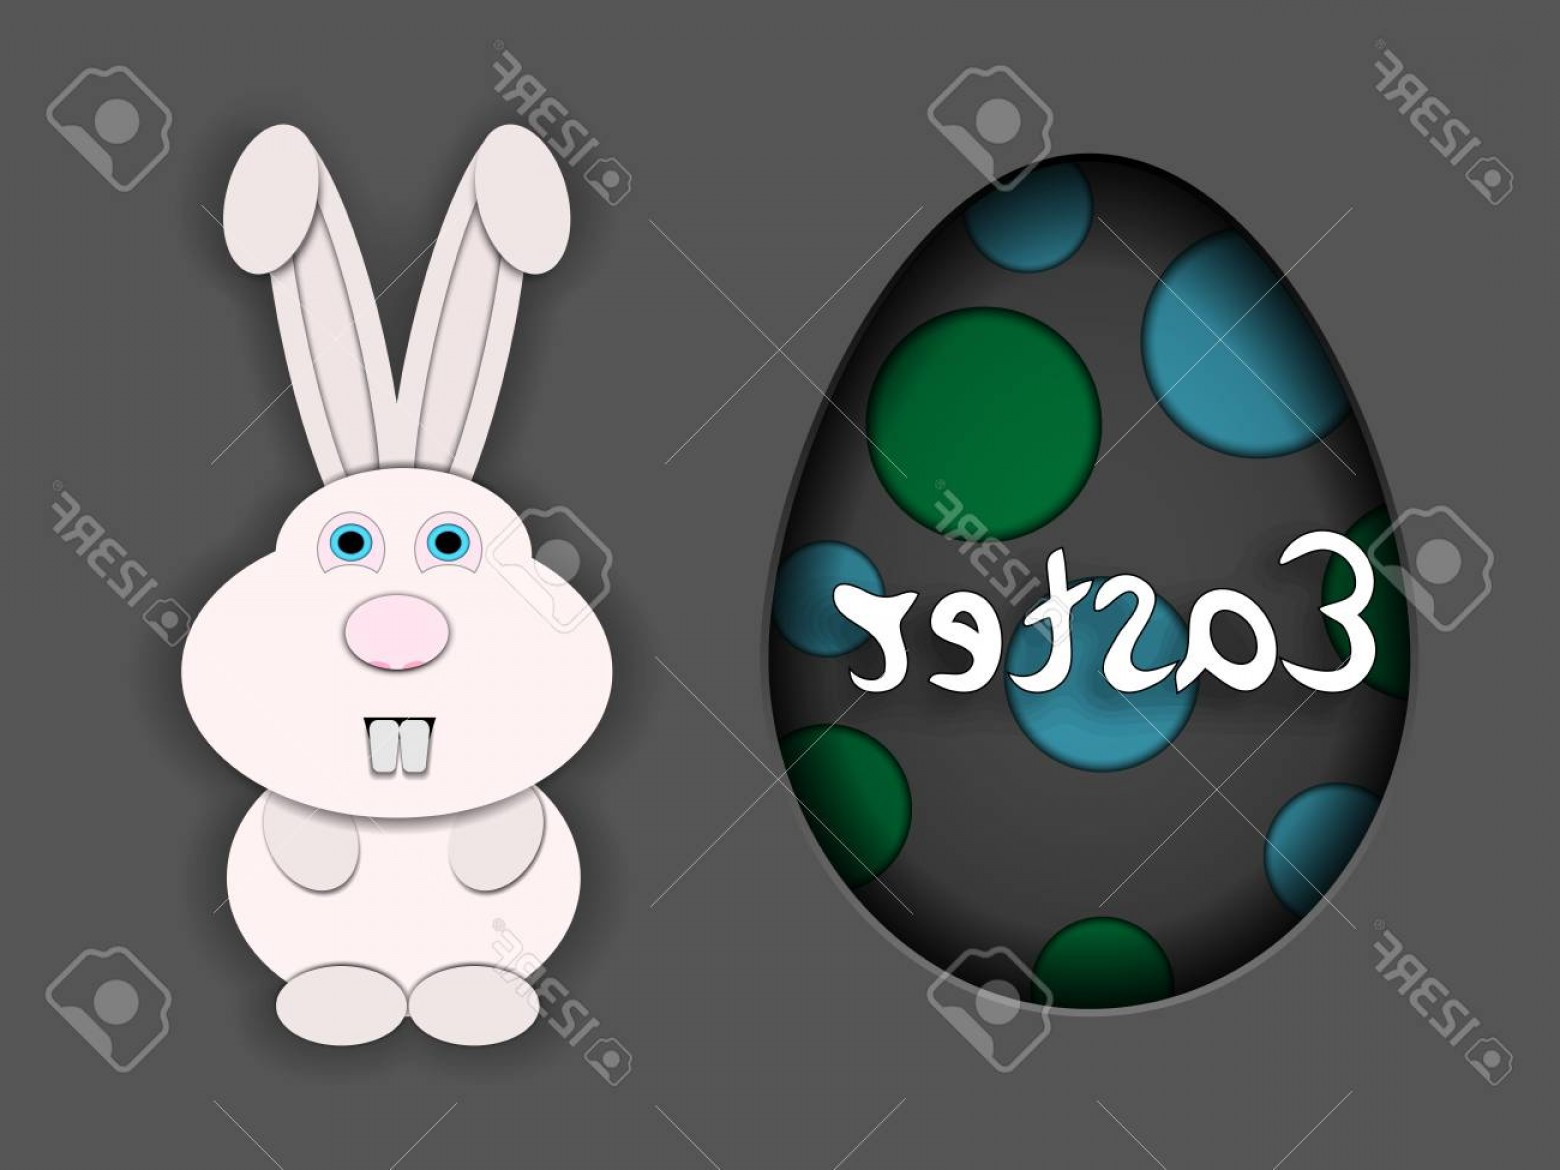 Animated Bunny Face Vector: Photostock Vector Easter Little White Rabbit With Stupid Face And Cute Ears Cut Out Of Paper